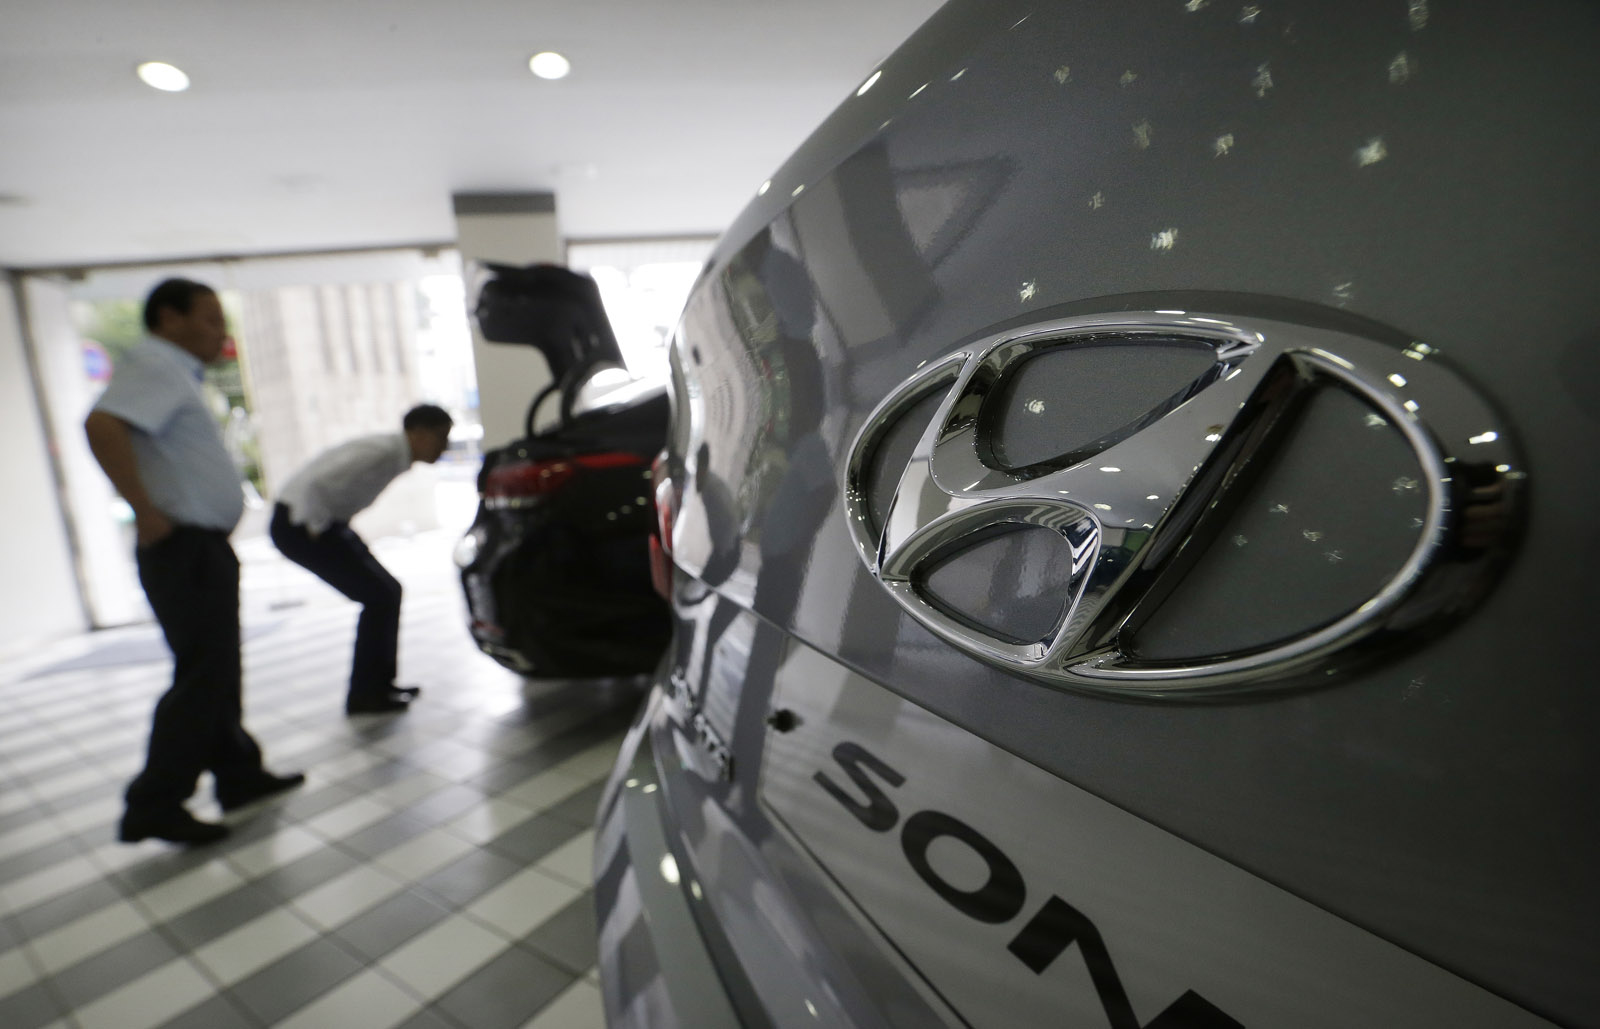 The logo of Hyundai Motor Co. is seen on a vehicle displayed at the company's showroom in Seoul, South Korea, Tuesday, July 26, 2016. Hyundai Motor Co. says its second-quarter income fell from a year earlier for a tenth straight quarter.(AP Photo/Ahn Young-joon)